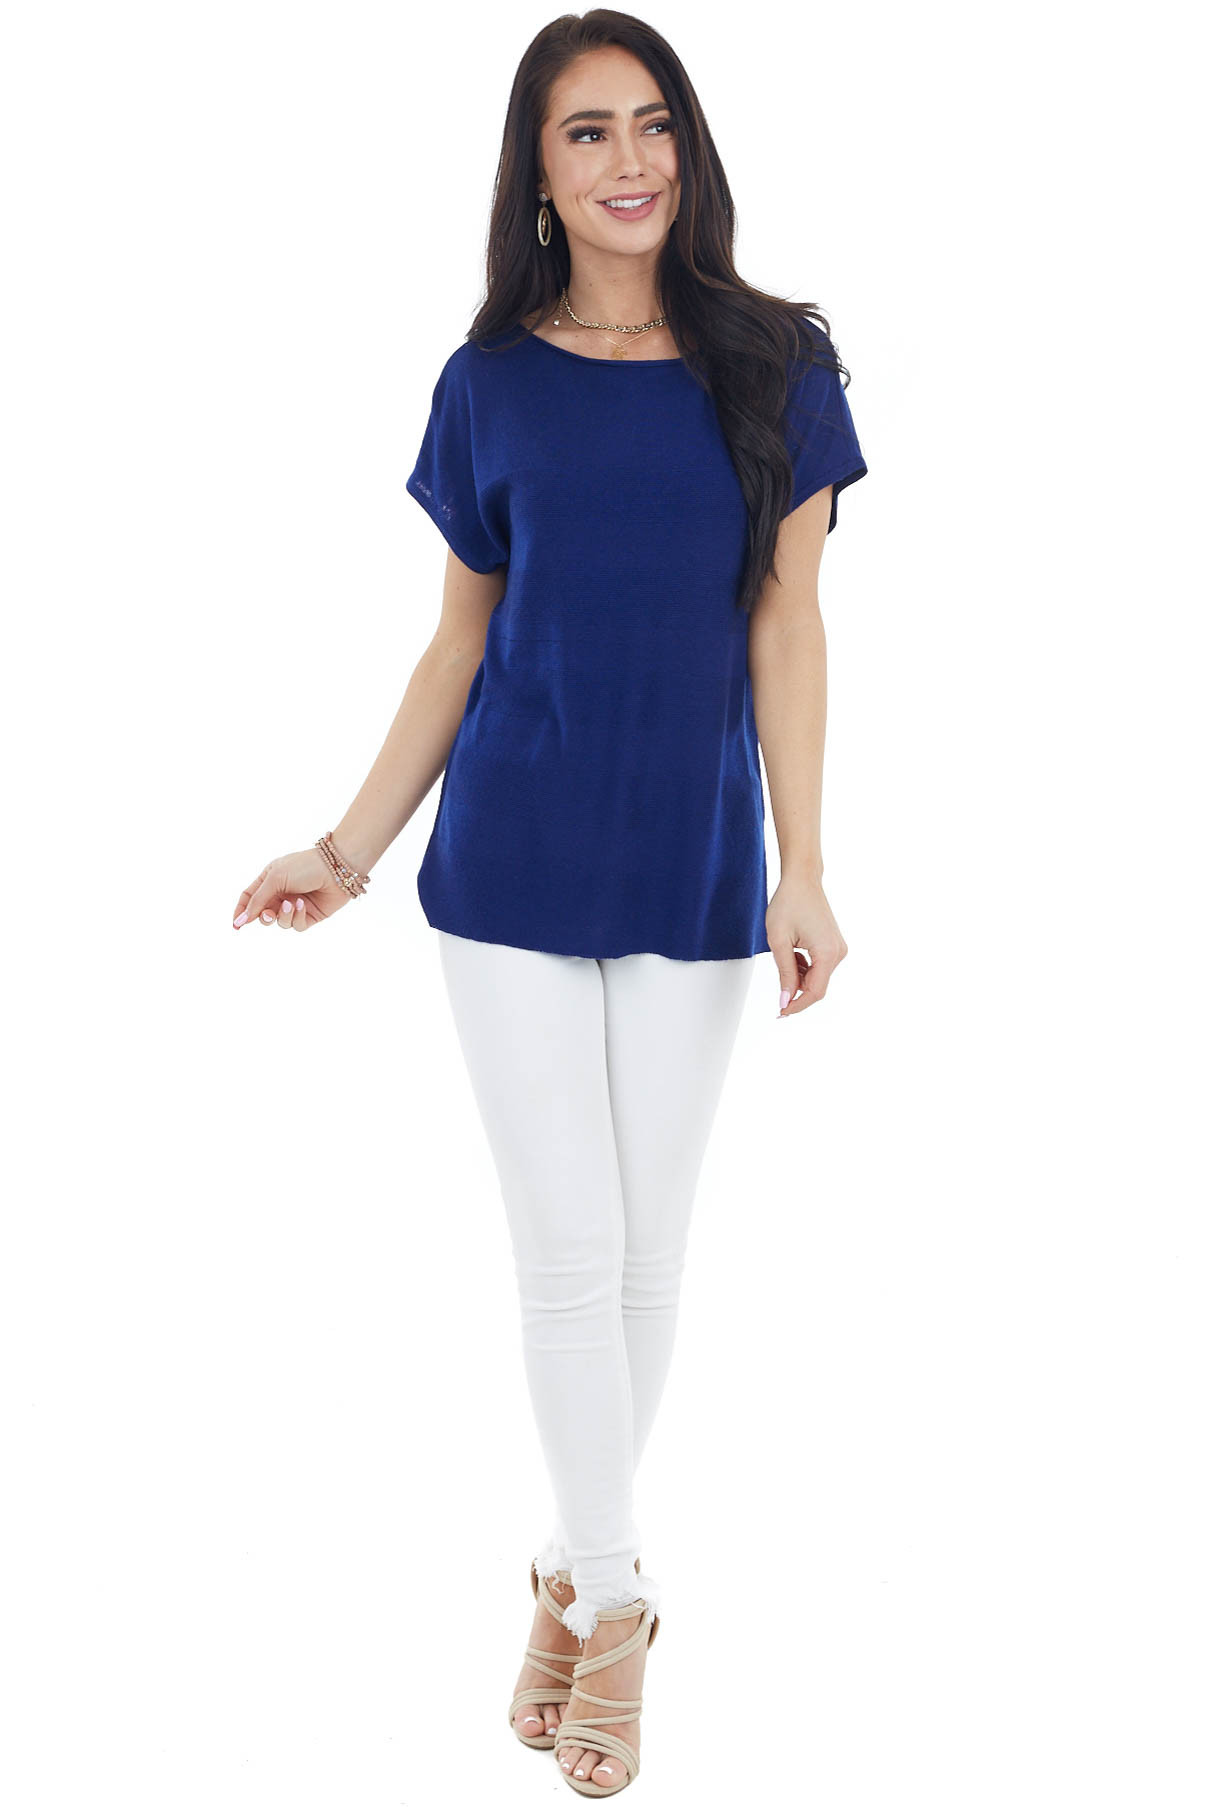 Navy Textured Striped Stretchy Knit Top with Short Sleeves